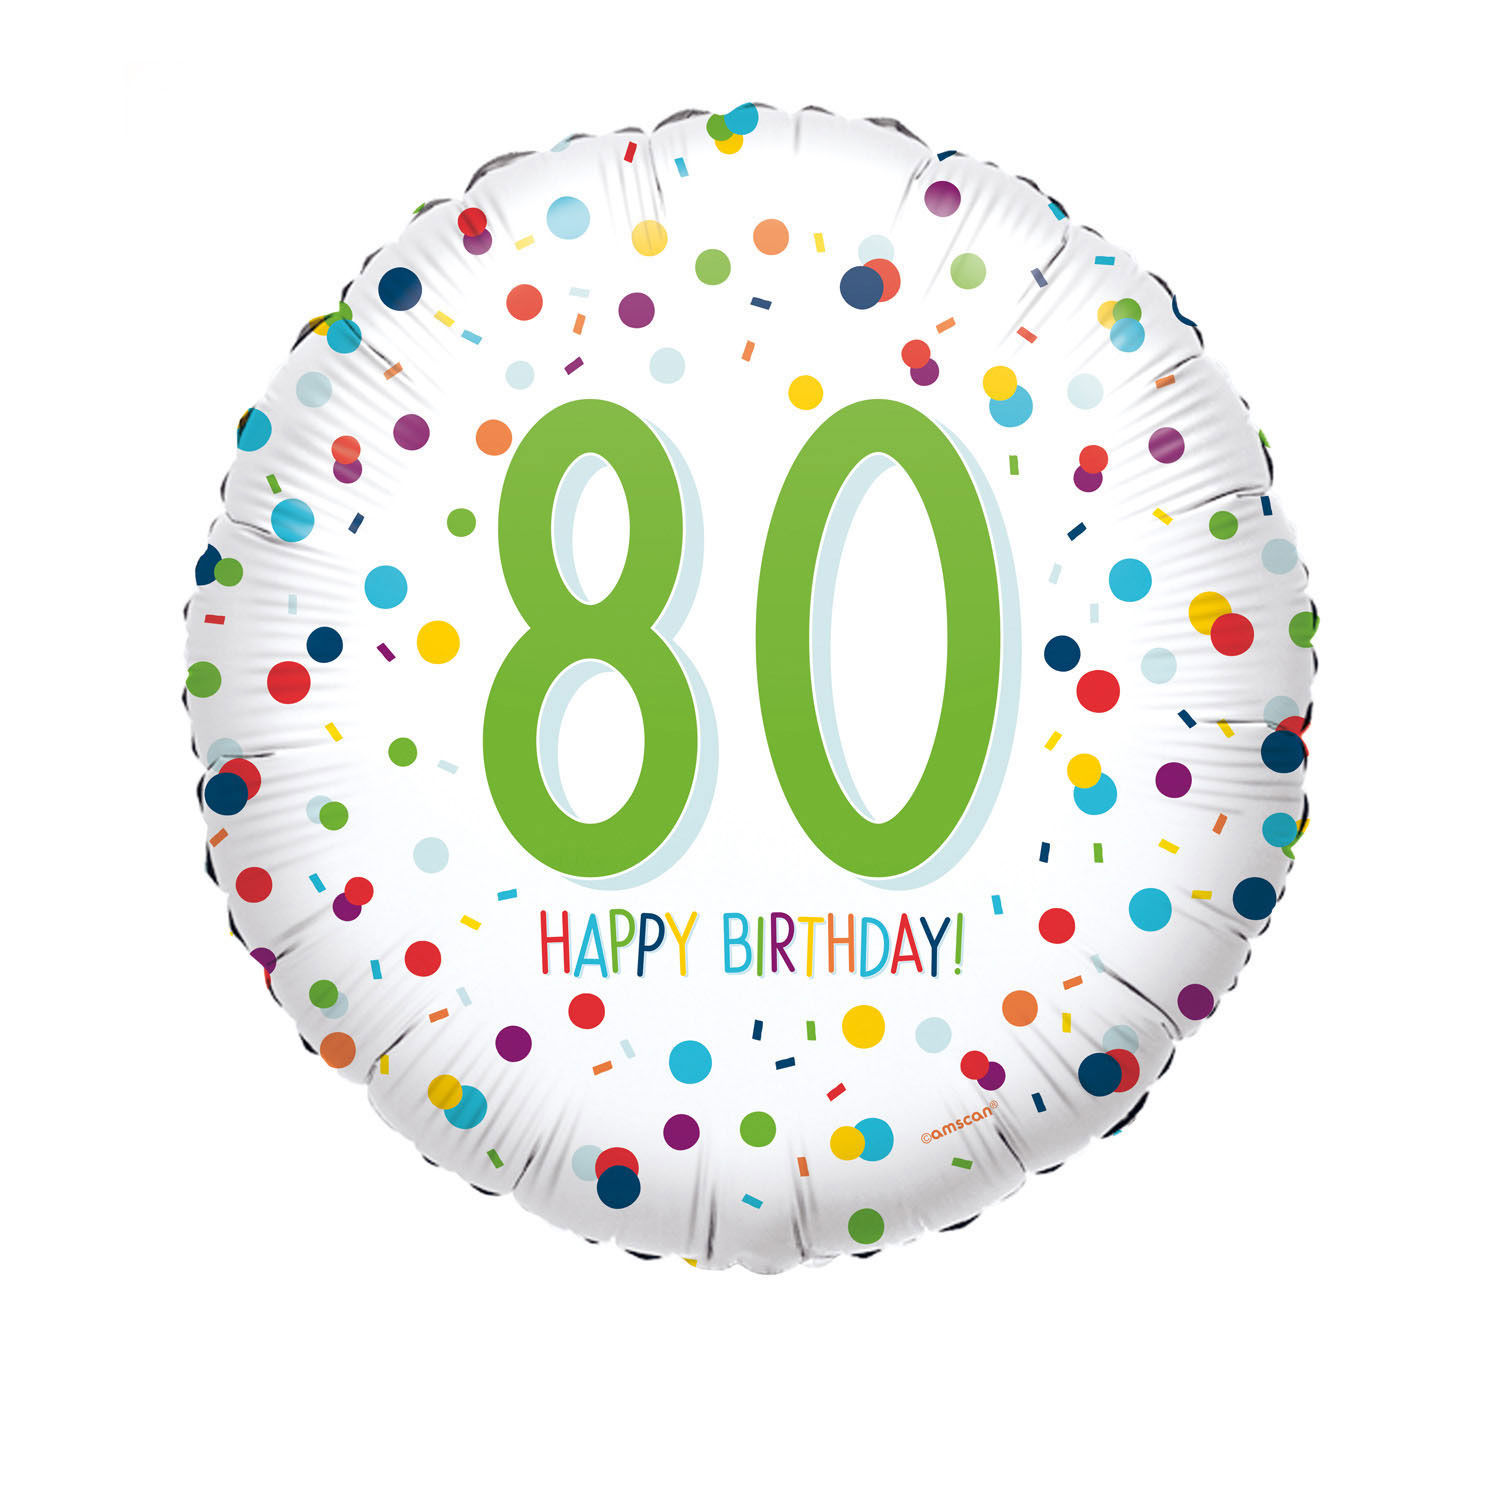 NEU Folienballon Konfetti Happy Birthday 80, ca. 45cm